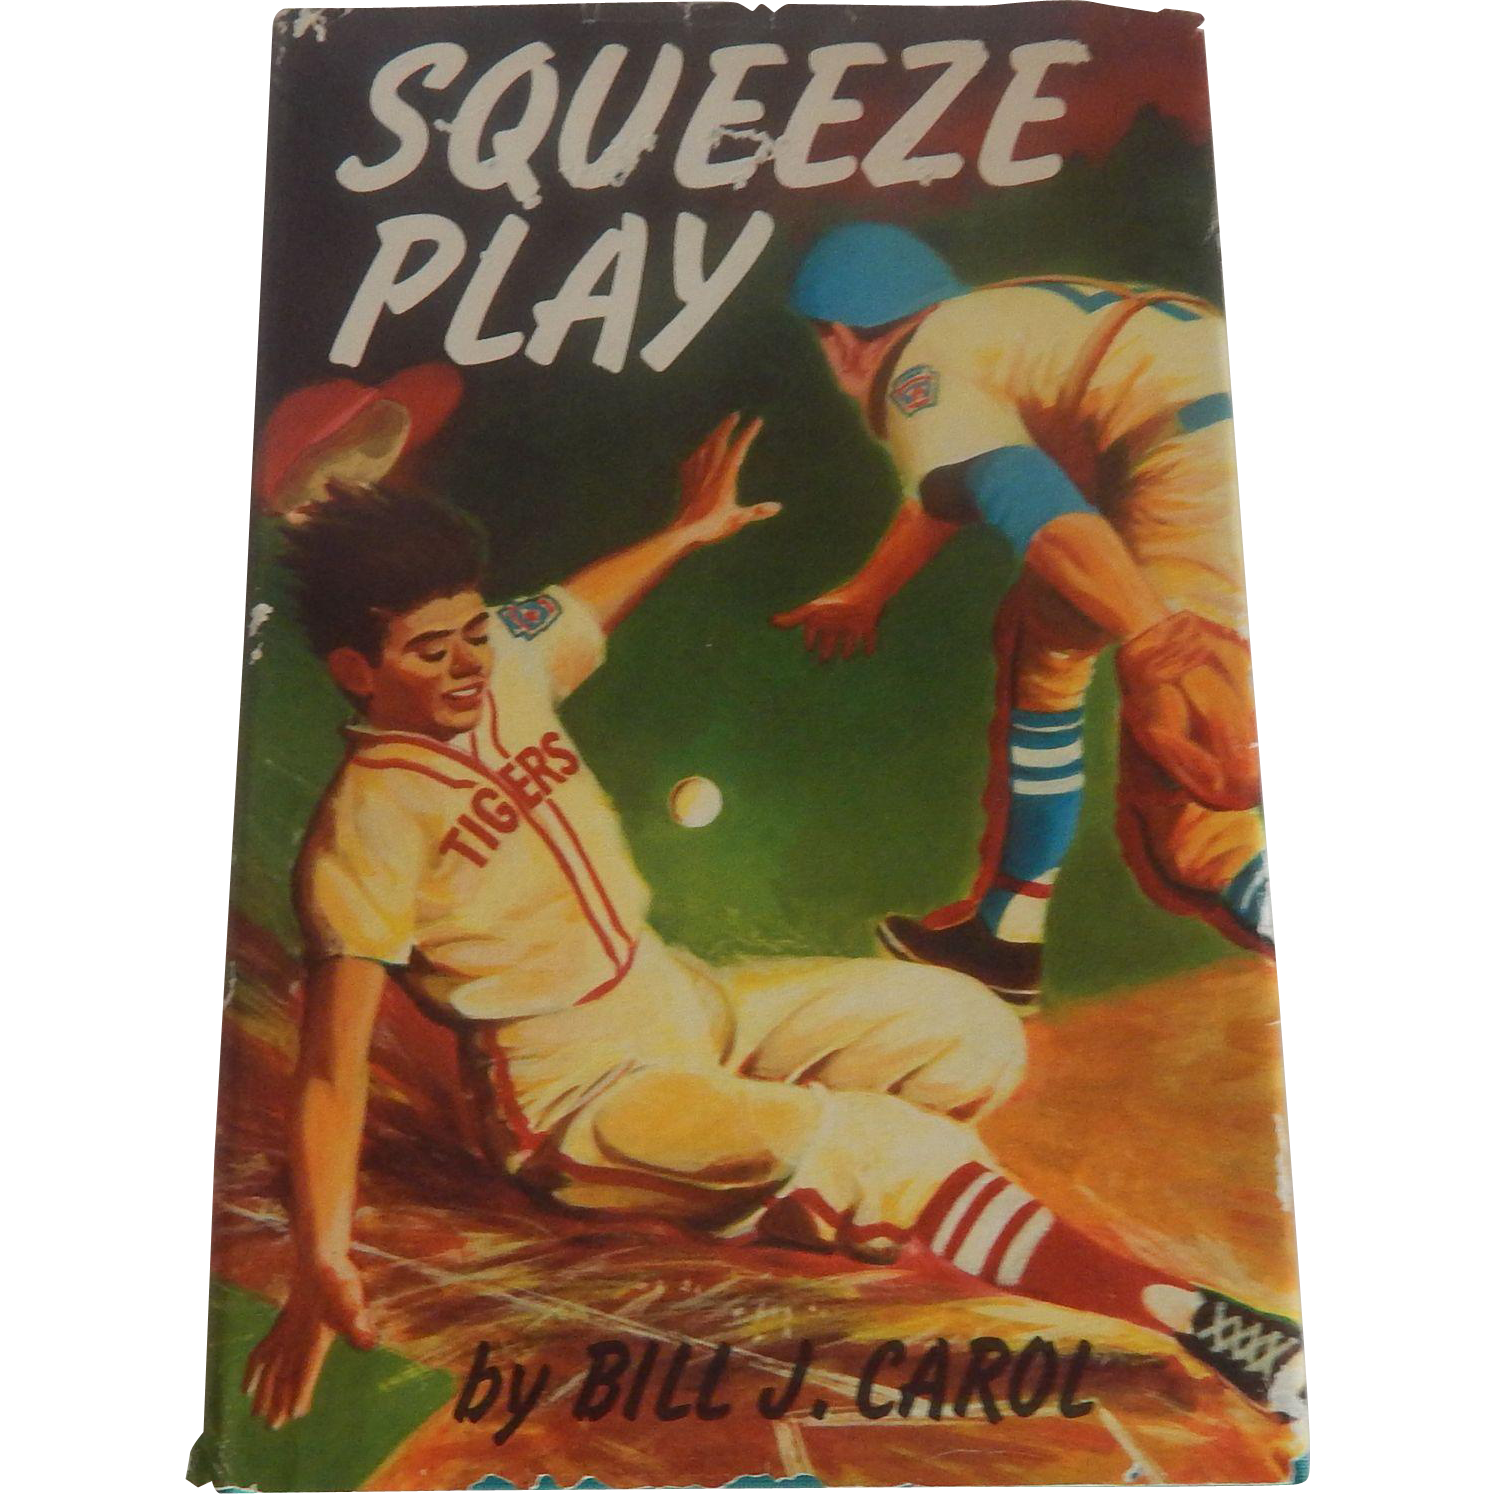 Squeeze Play by Bill J. Carol